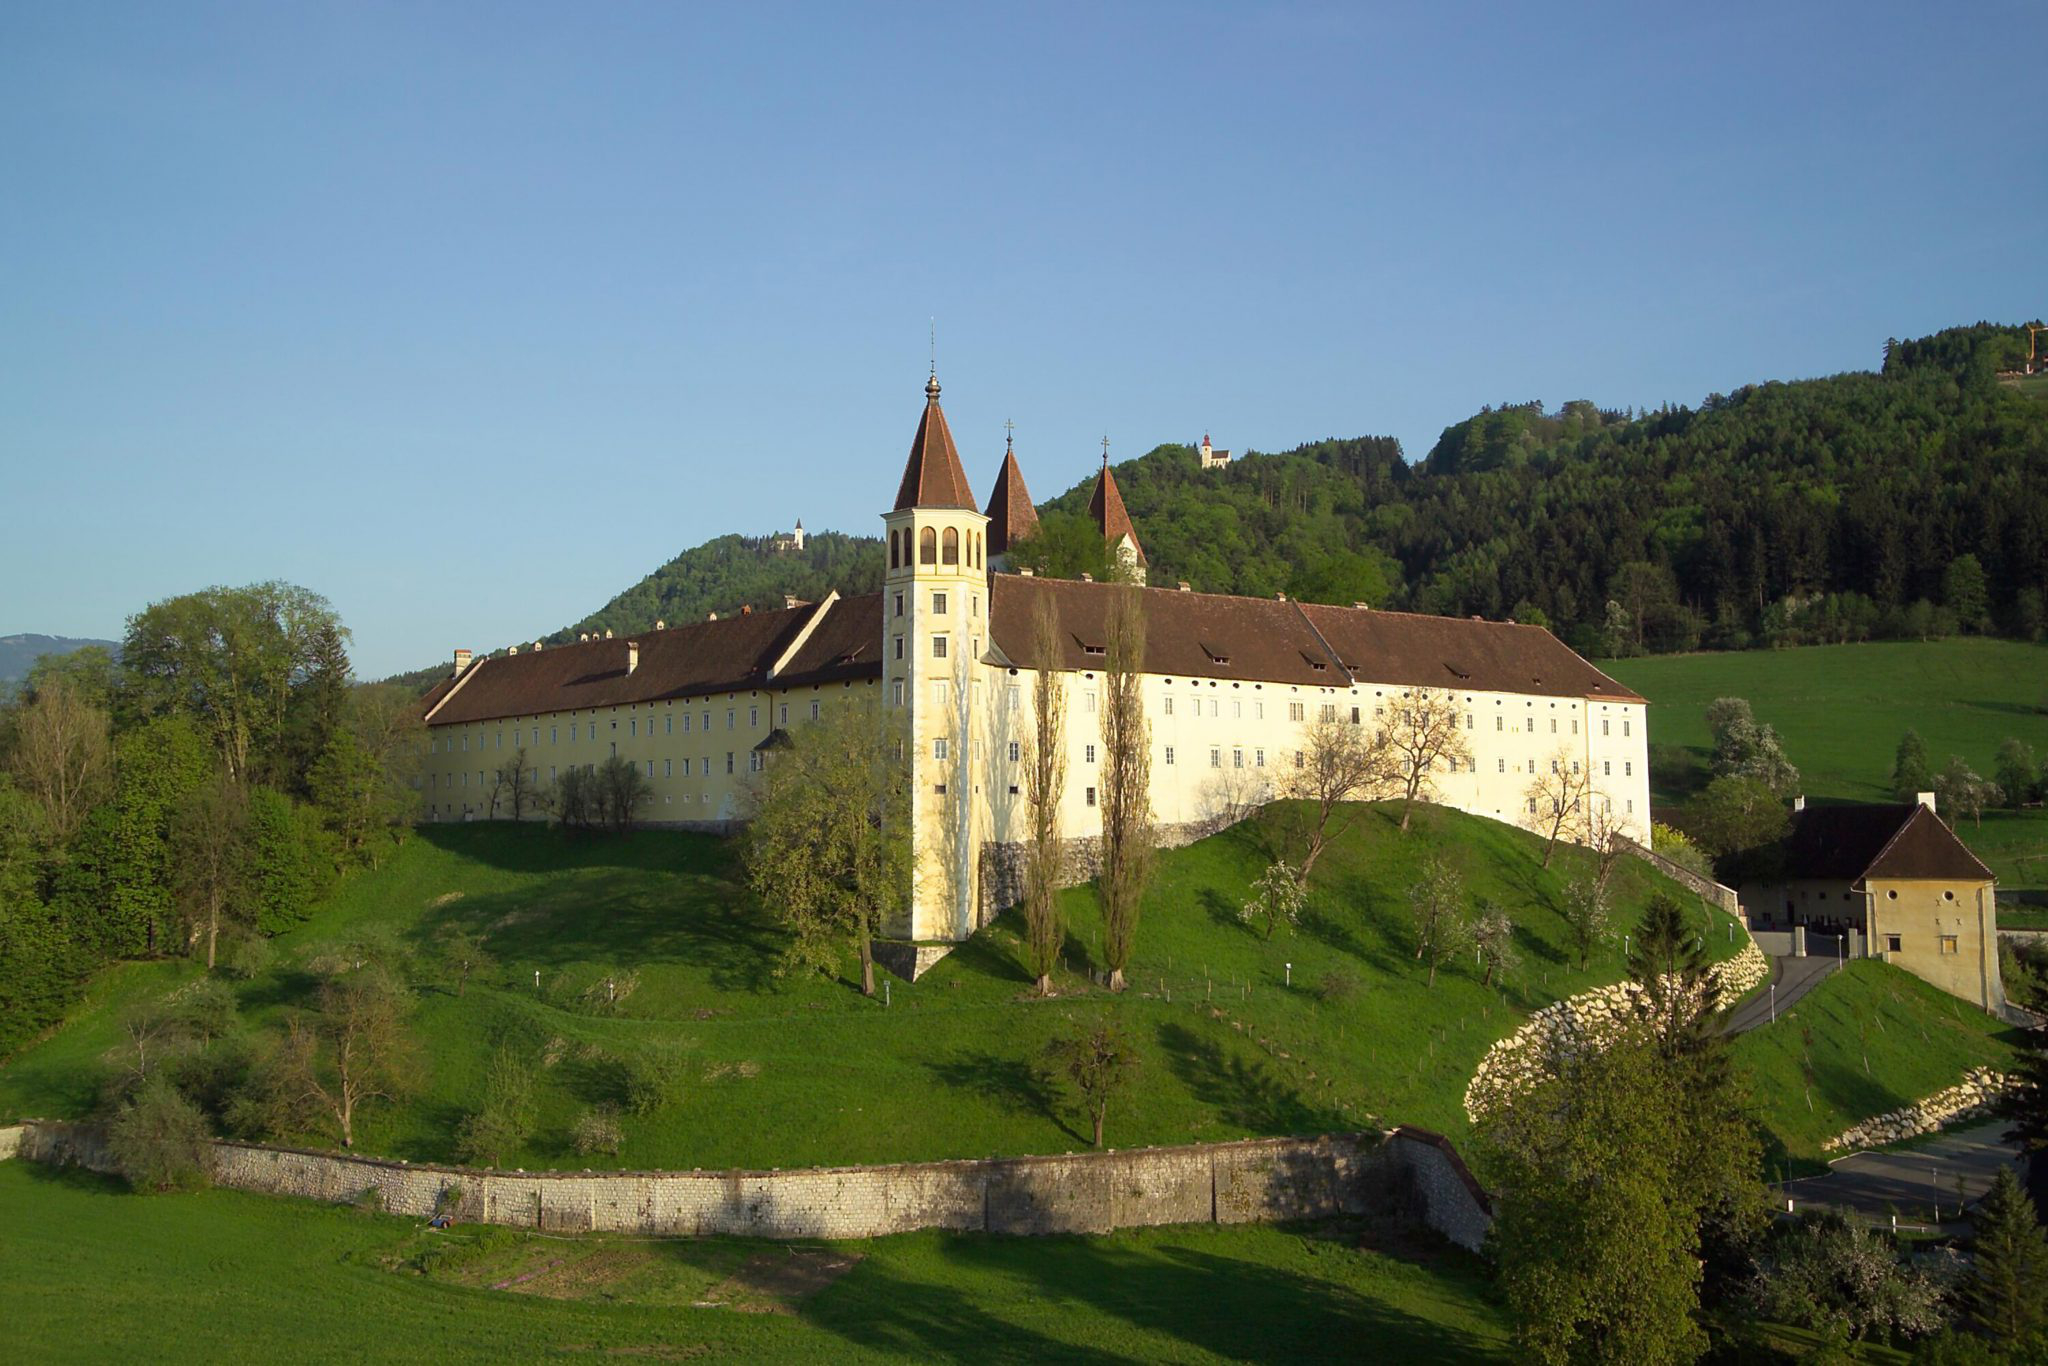 Benedictine monastery in Carinthia's Lavanttal region (Exterior view ) © Stift St. Paul